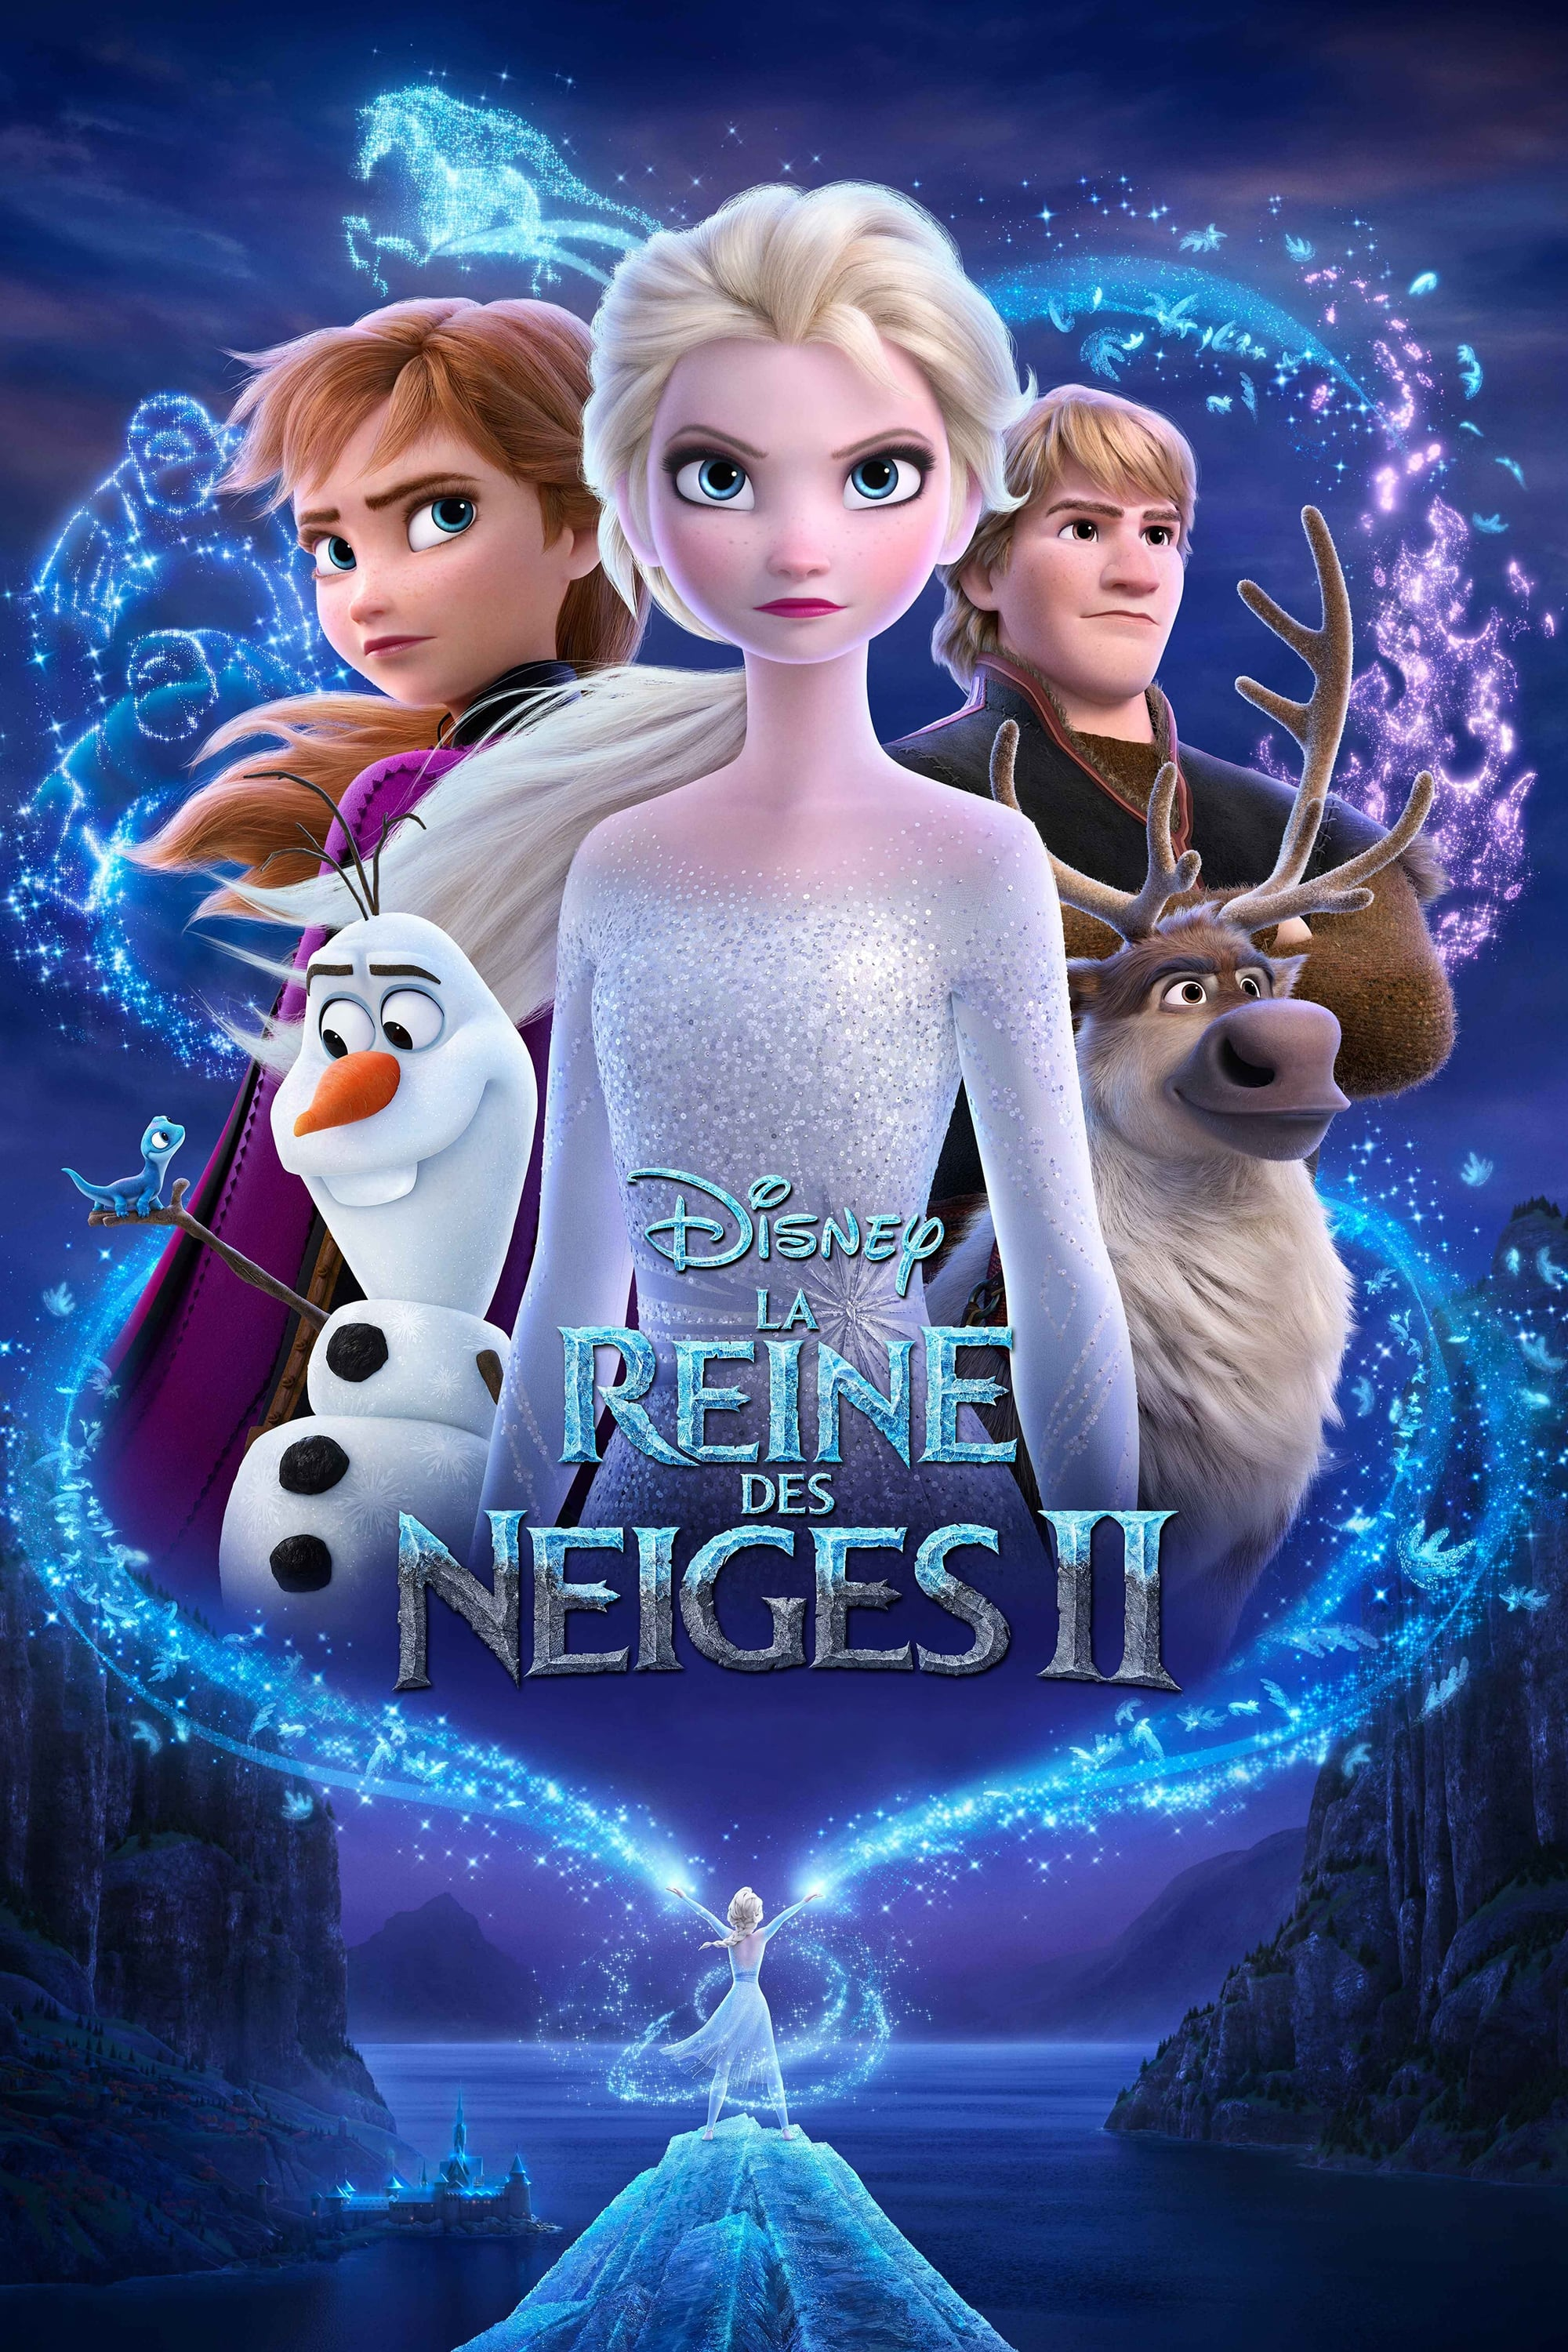 La reine des neiges 2 streaming sur zone telechargement